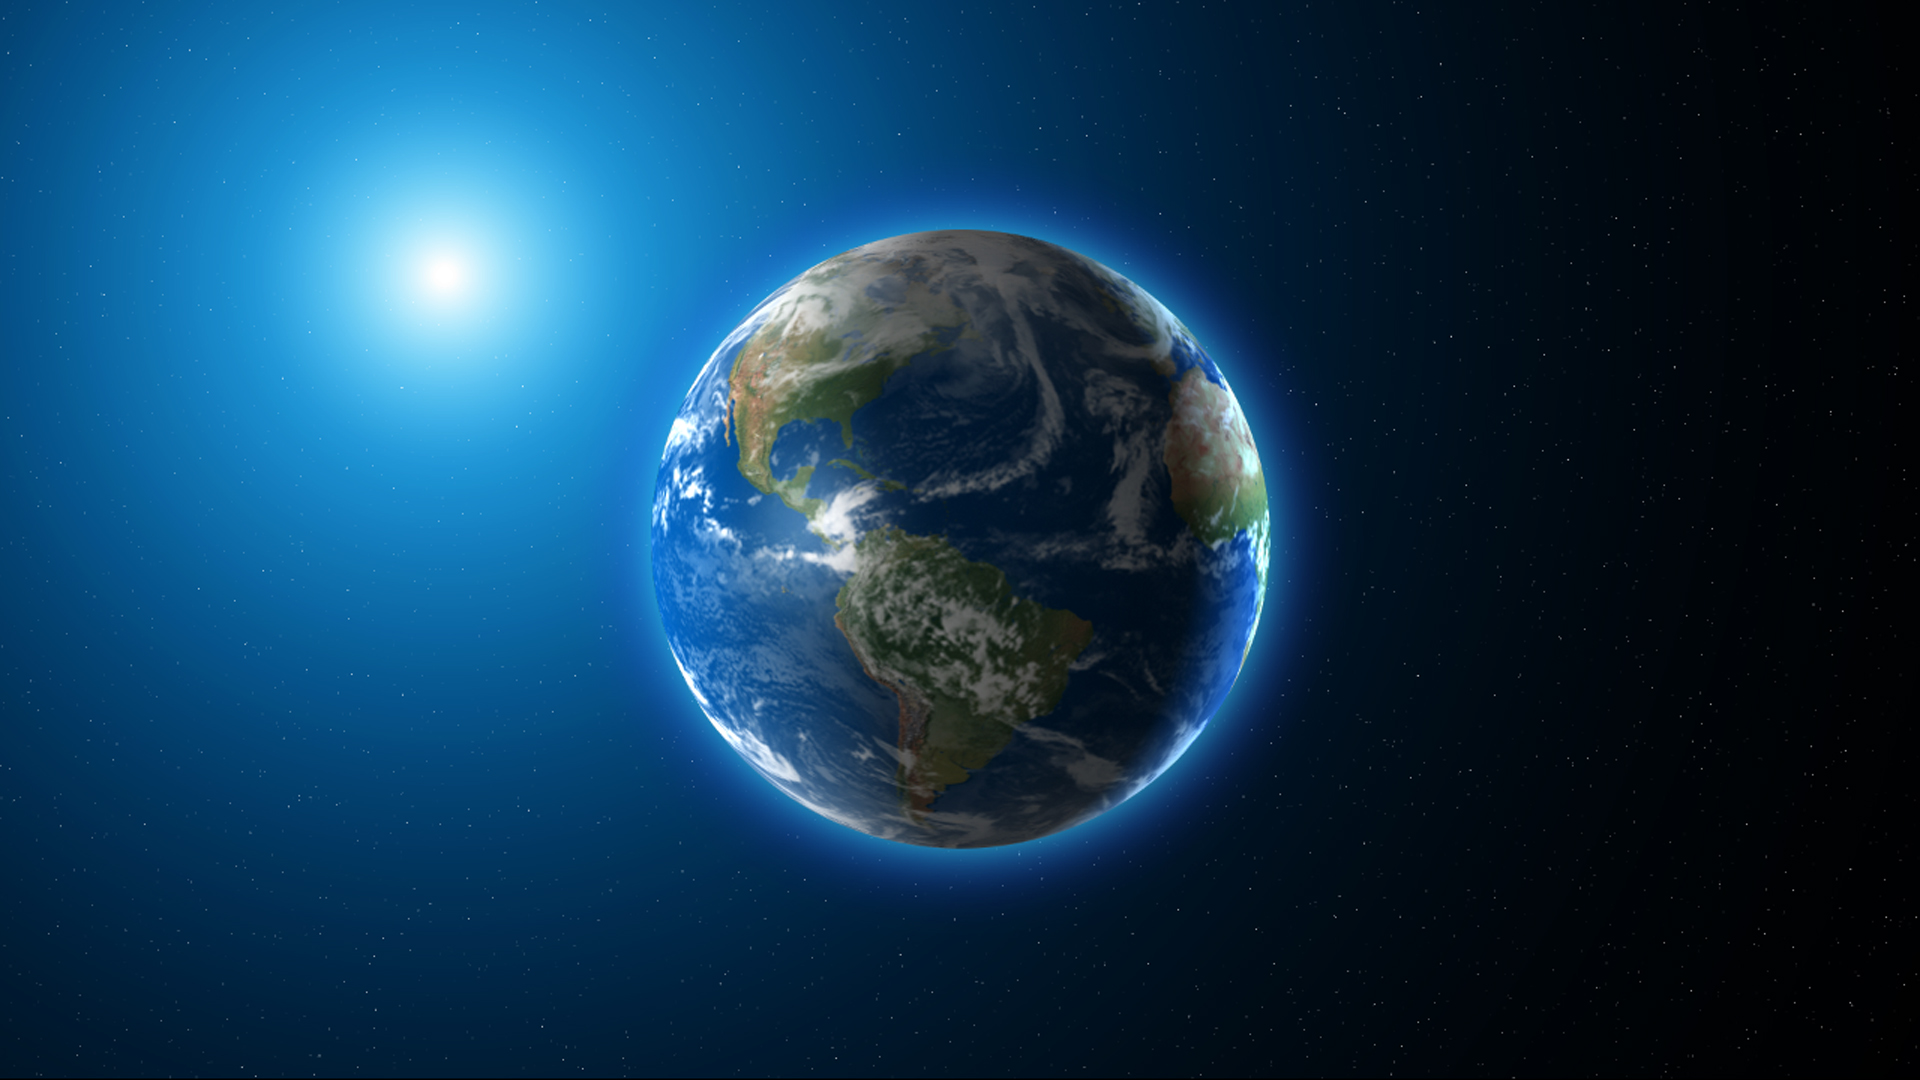 images of planet earth screensaver - #spacehero